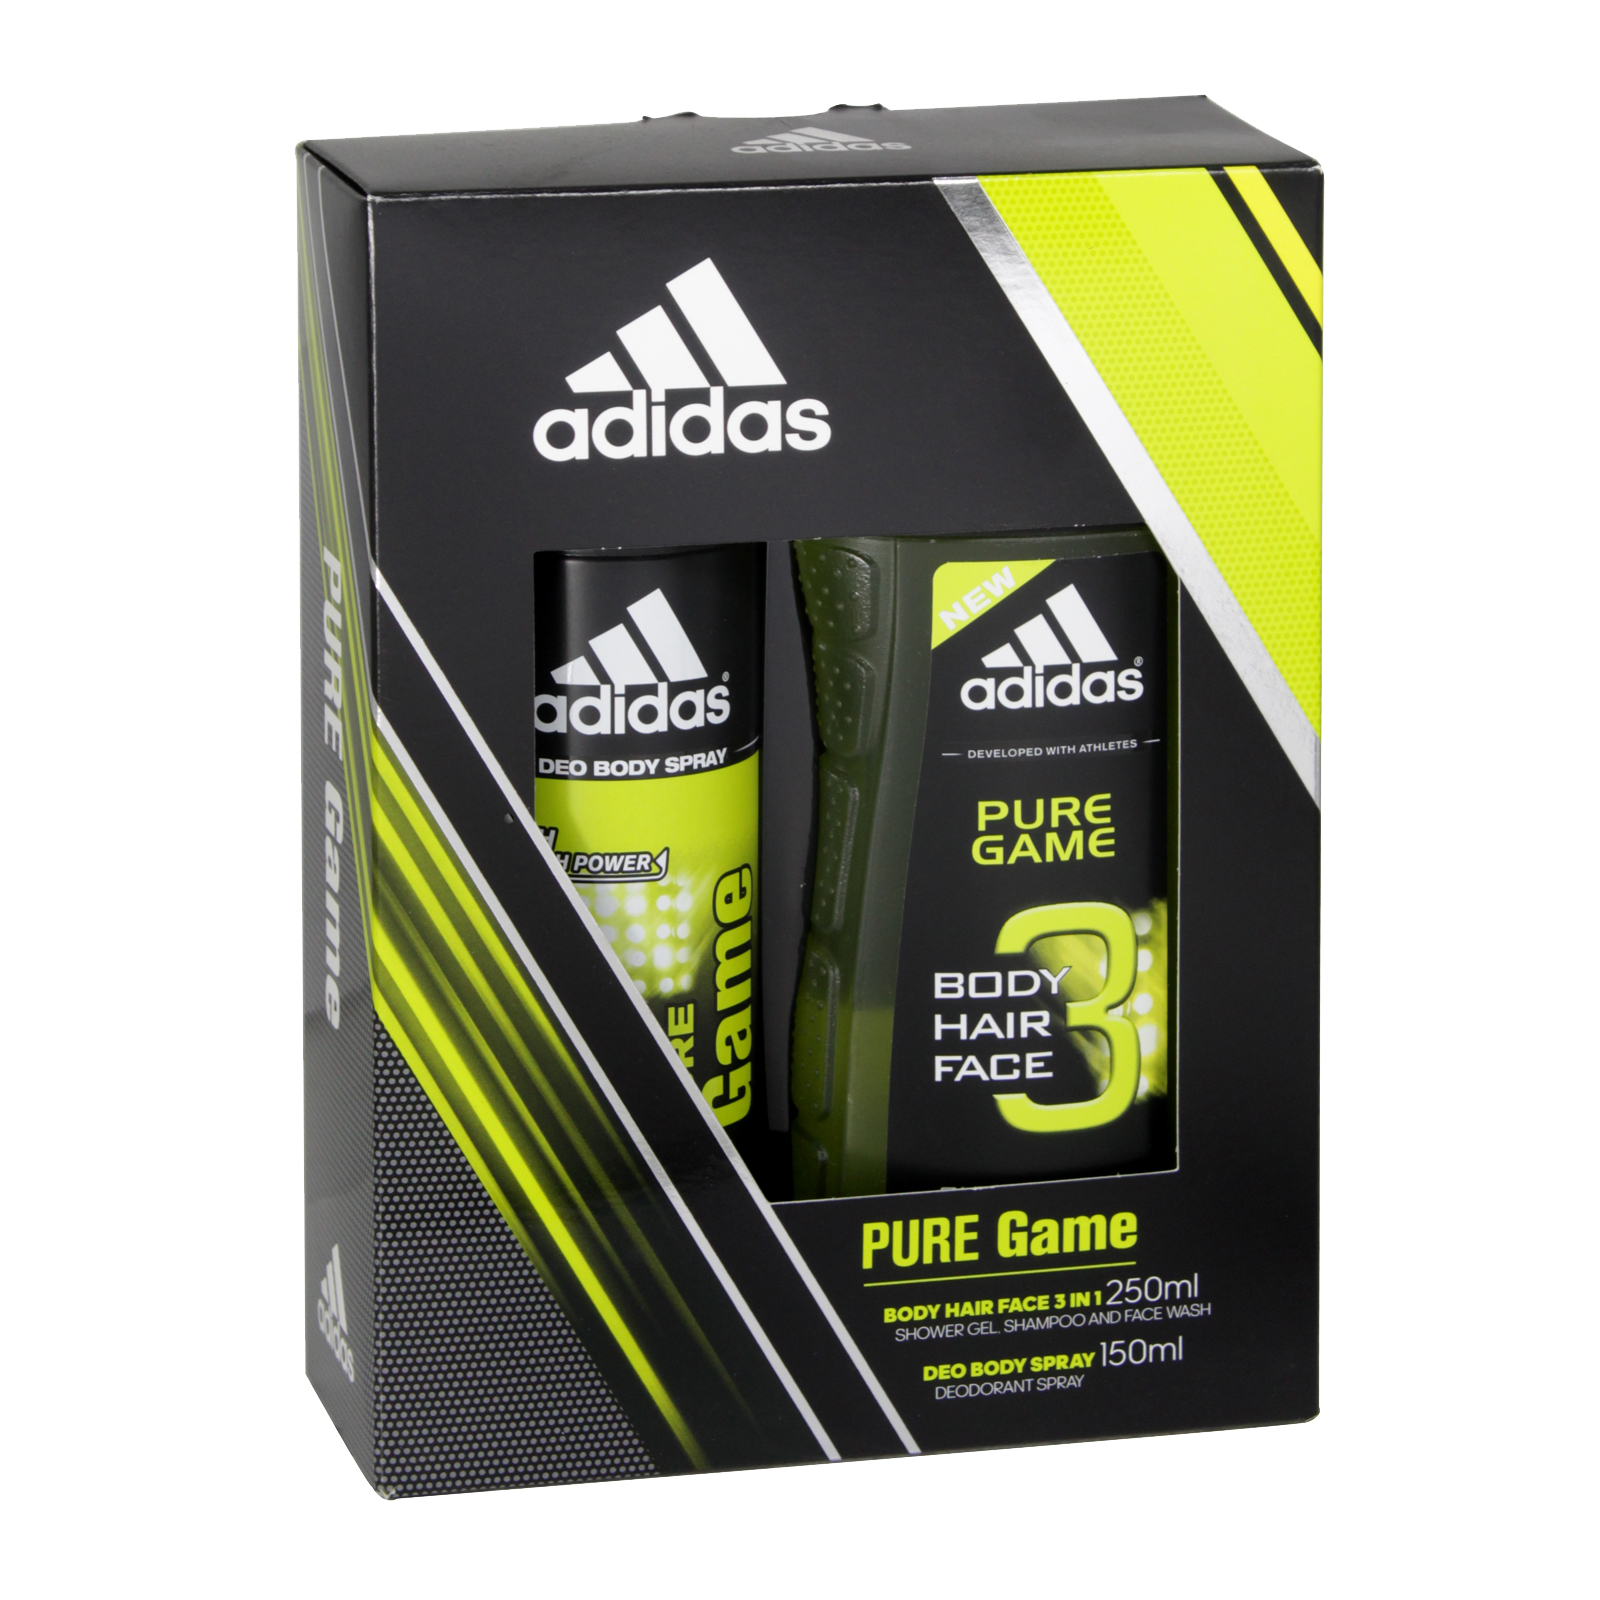 ADIDAS 150ML B/S+250ML S/G PURE GAME